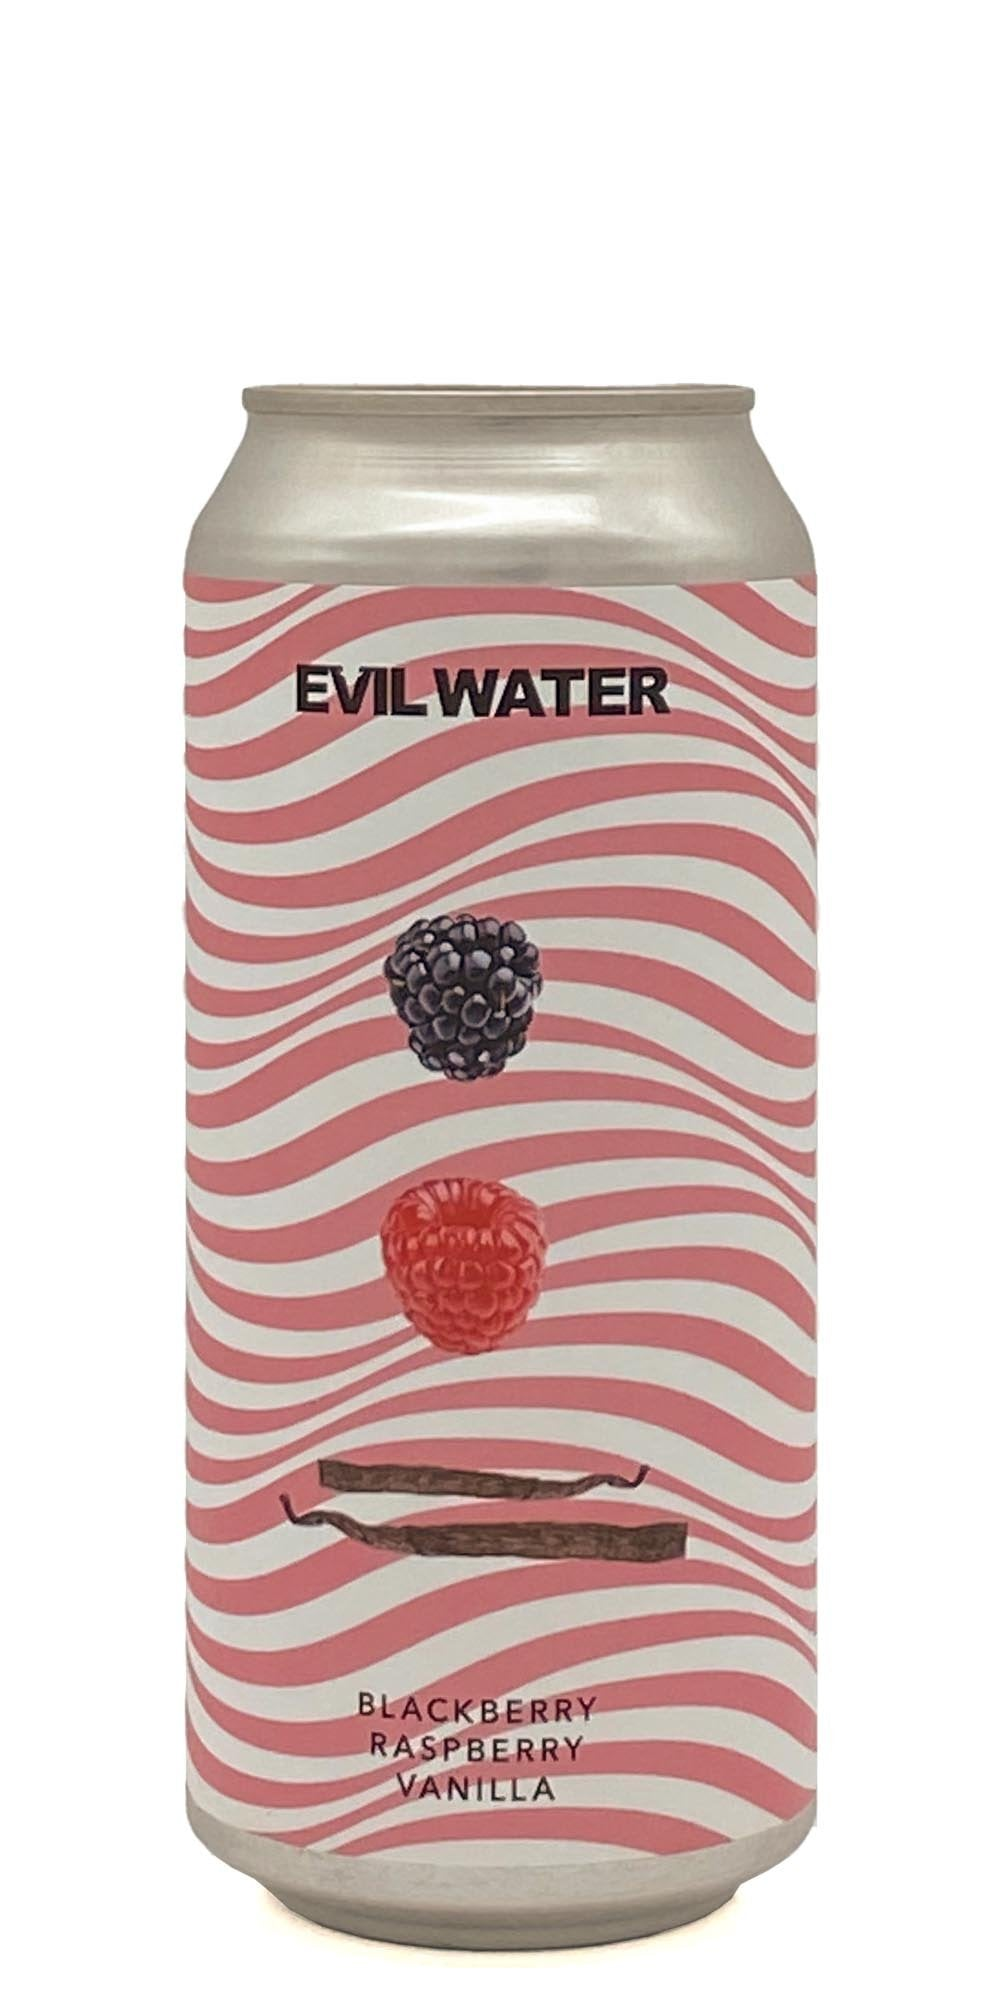 Evil Water Blackberry Raspberry Vanilla - Drikbeer - Order Craft Beer Online